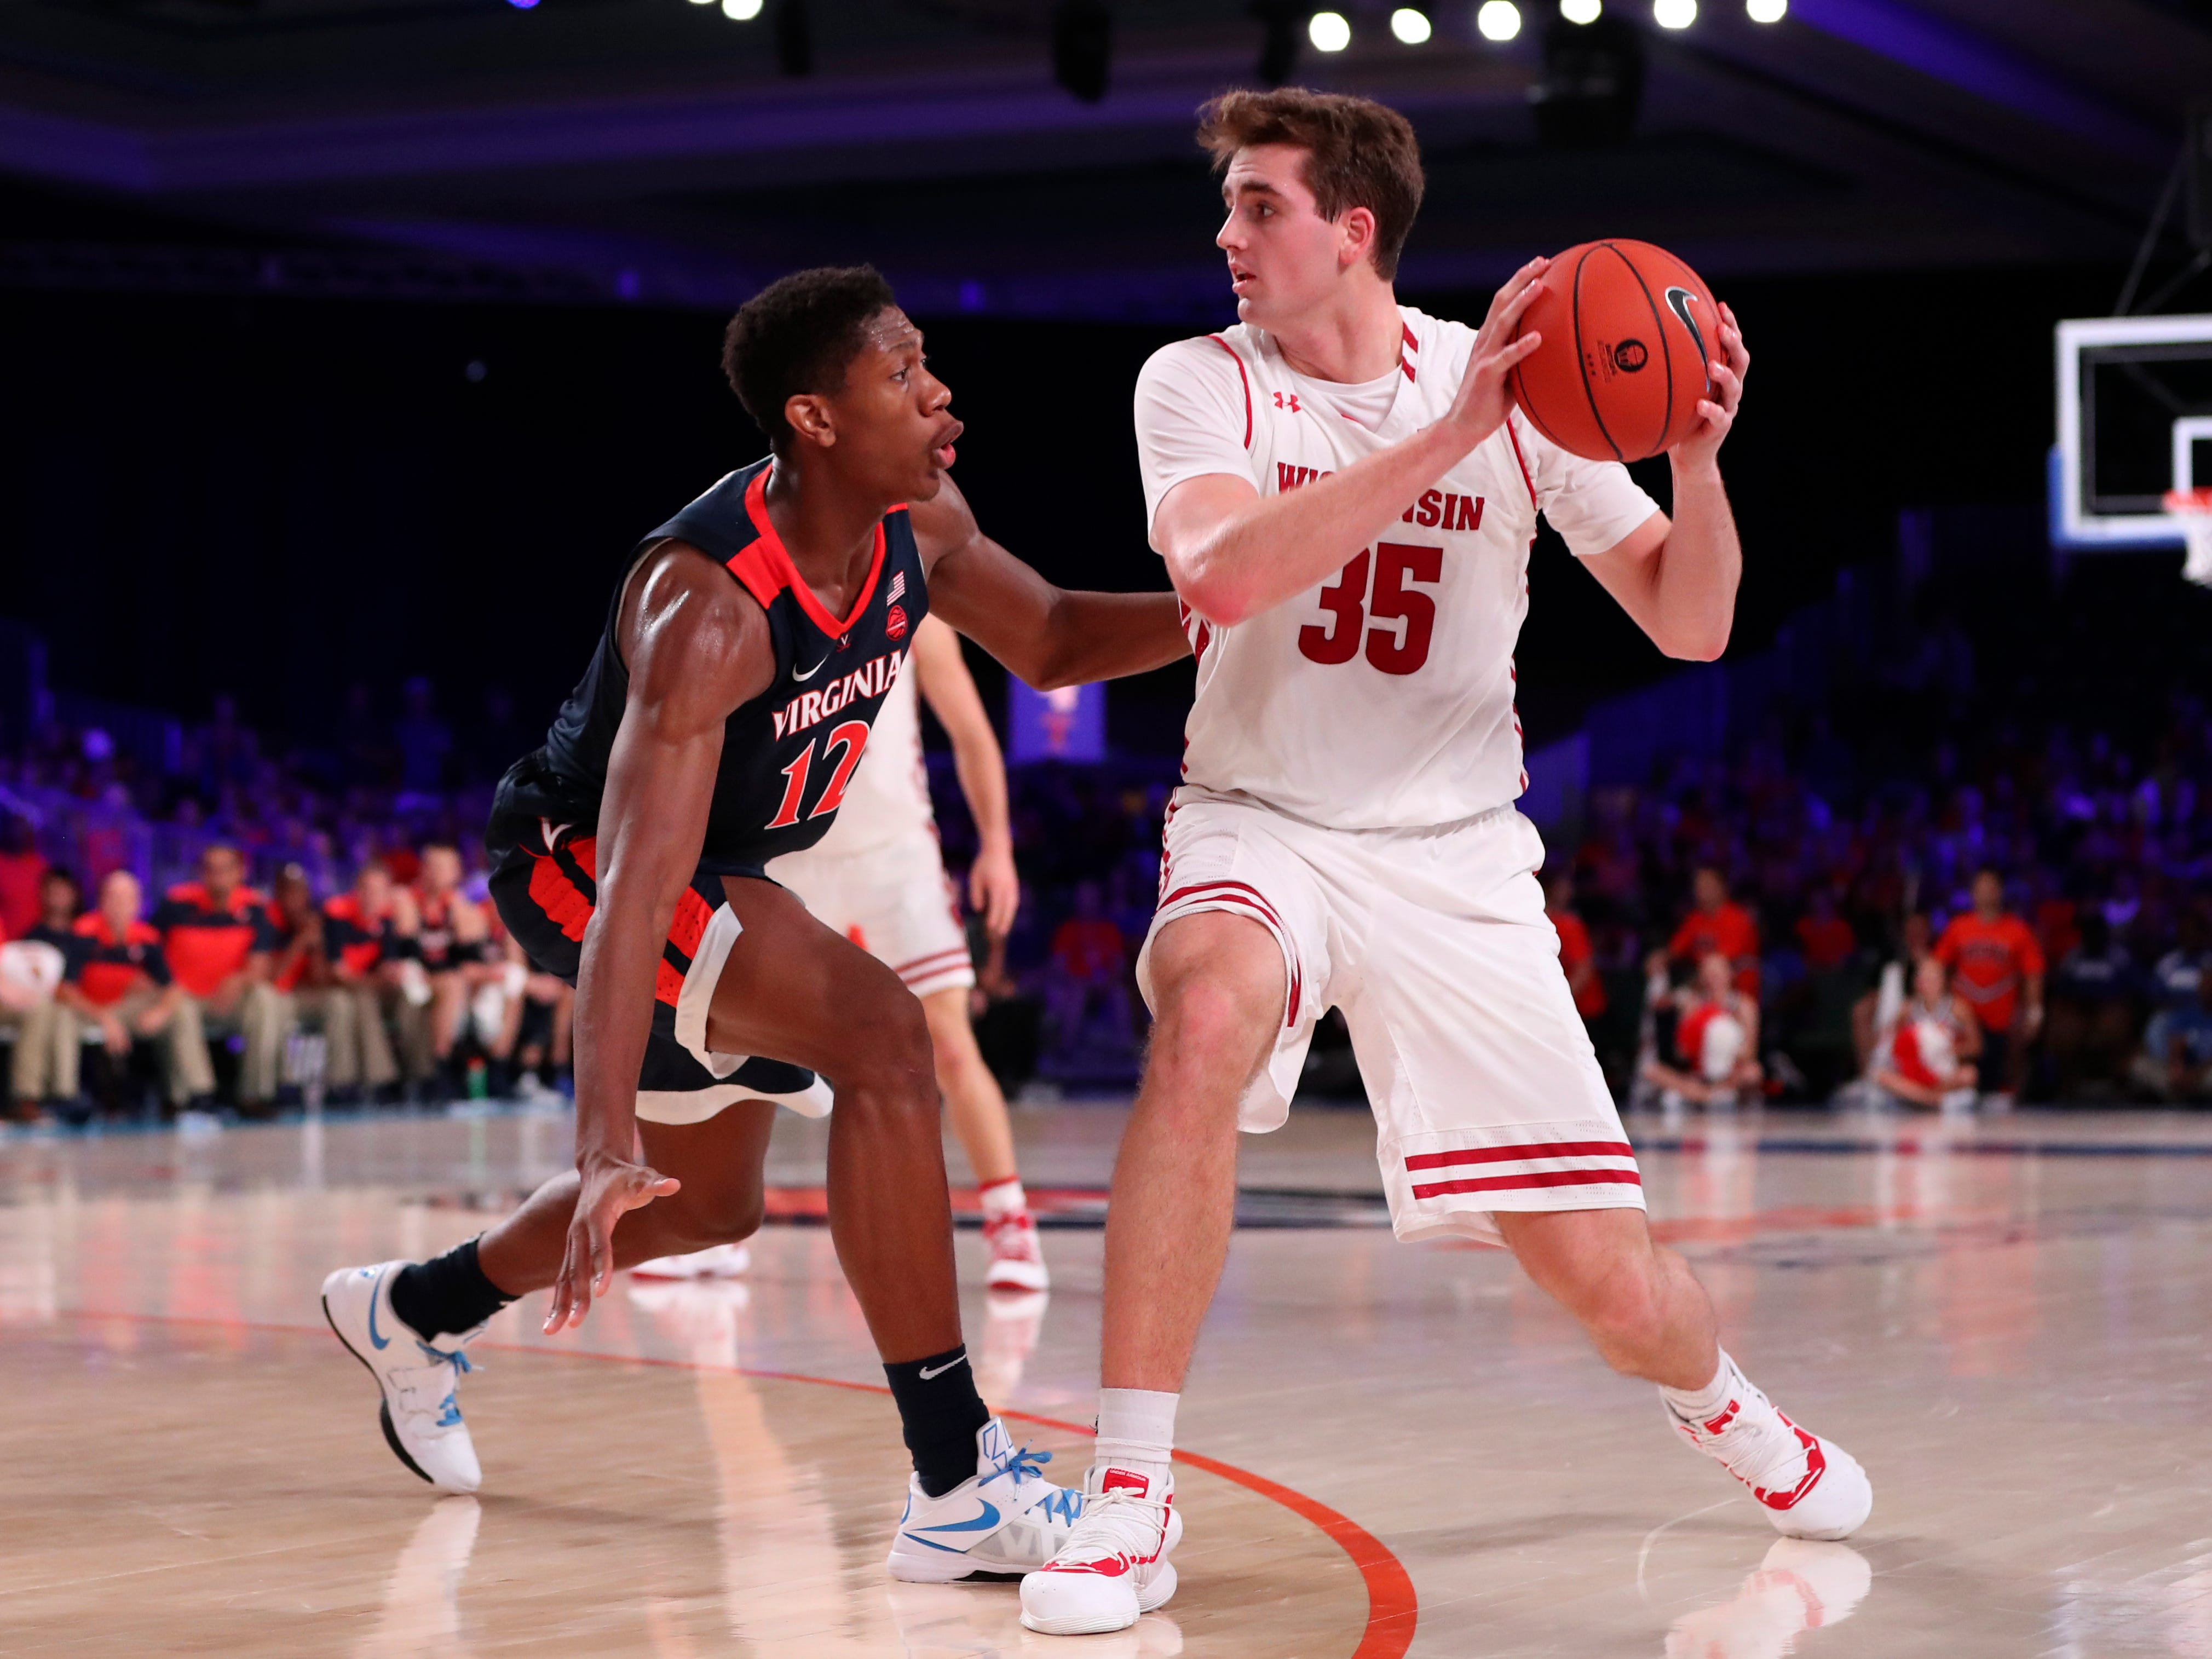 Badgers forward Nate Reuvers looks to pass over Virginia  guard De'Andre Hunter.